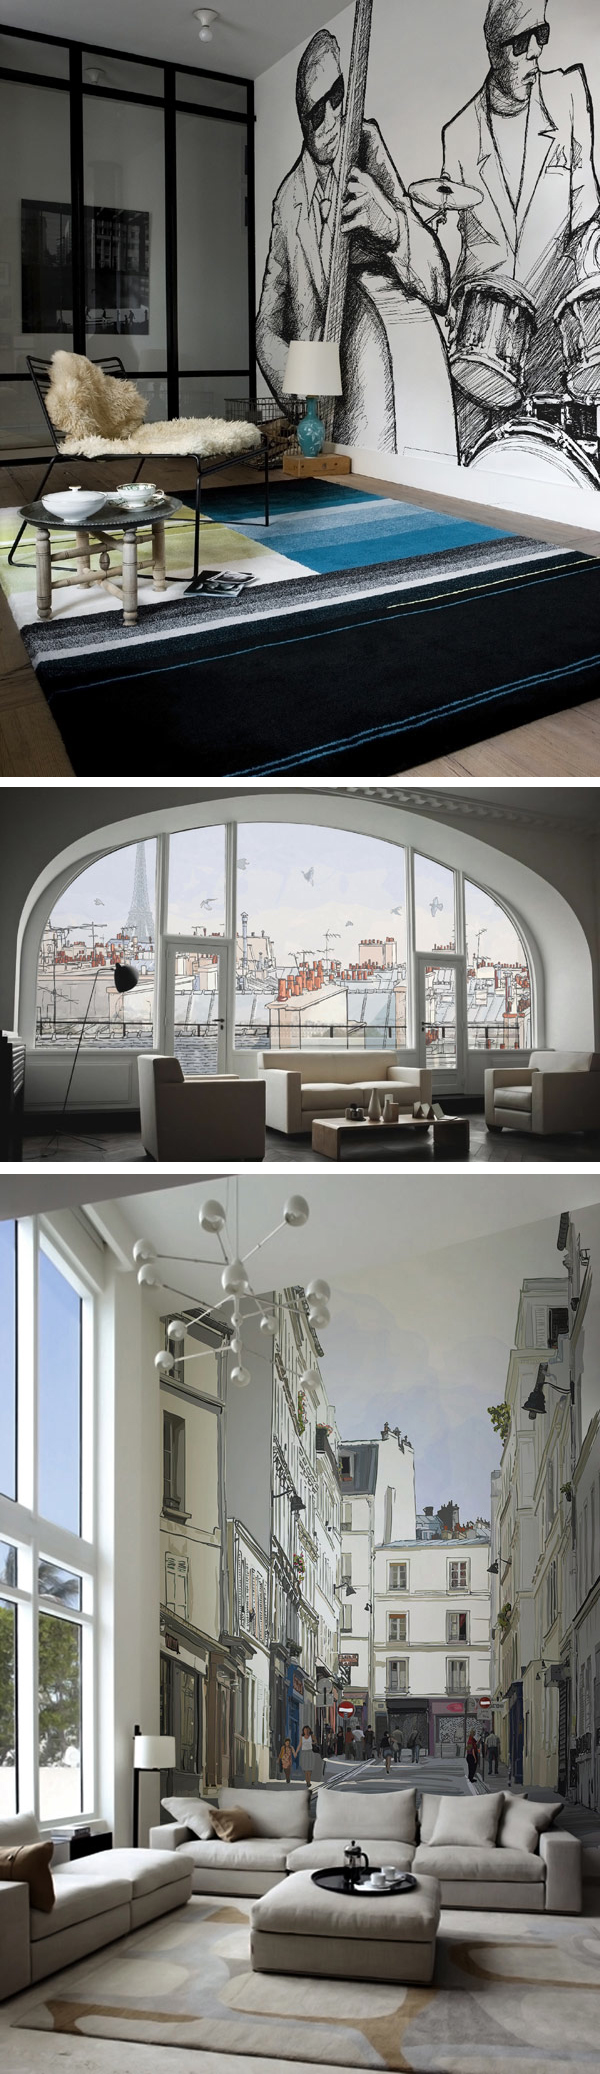 Adding Personality To Modern Interiors City Never Sleeps Wall Murals By Pixers